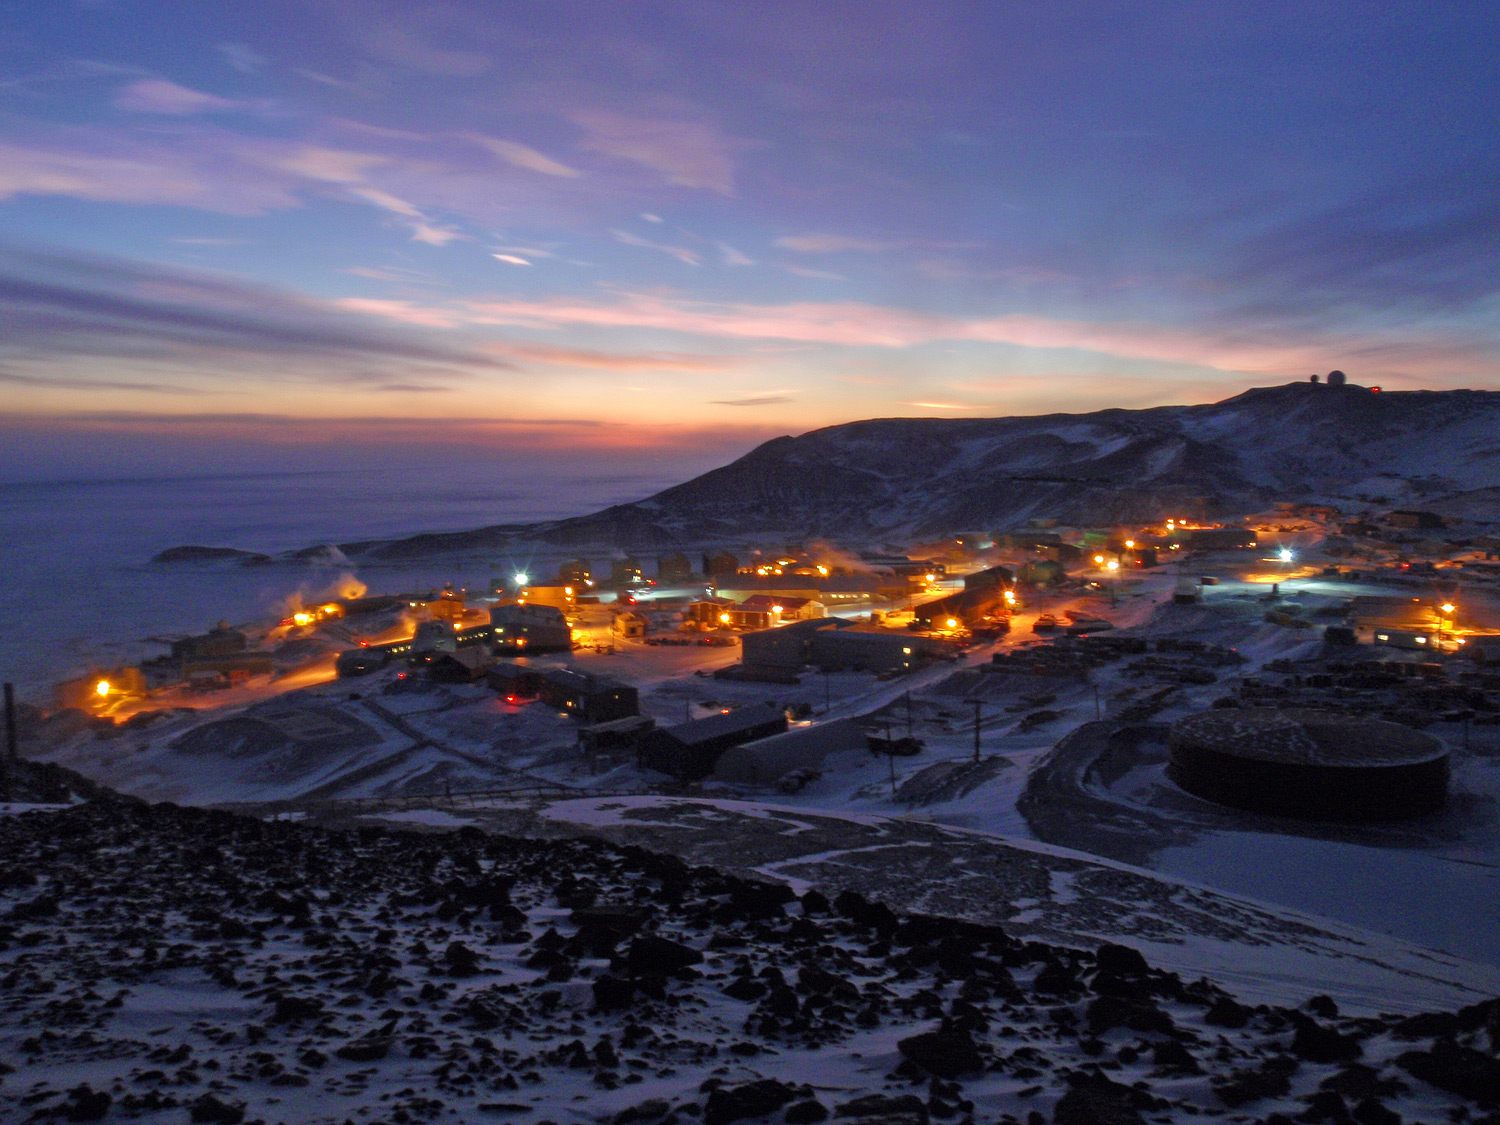 McMurdo Station seen from Observation Hill